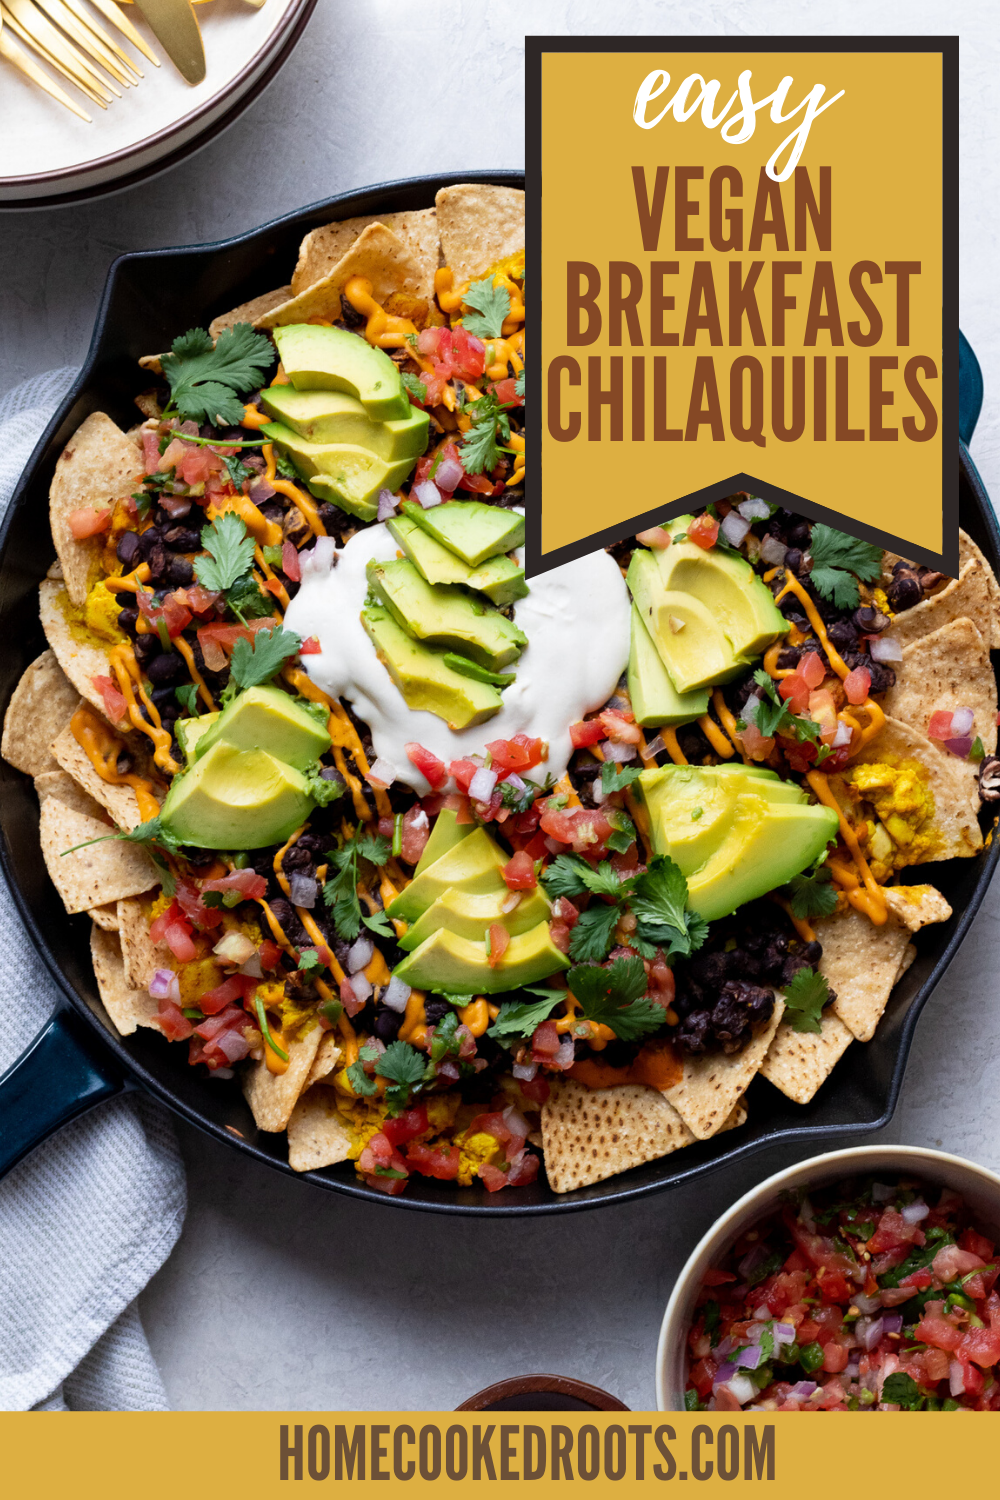 Vegan Chilaquiles With Silken Tofu Scramble In 2020 Tofu Scramble Vegan Breakfast Easy Vegan Instant Pot Recipes